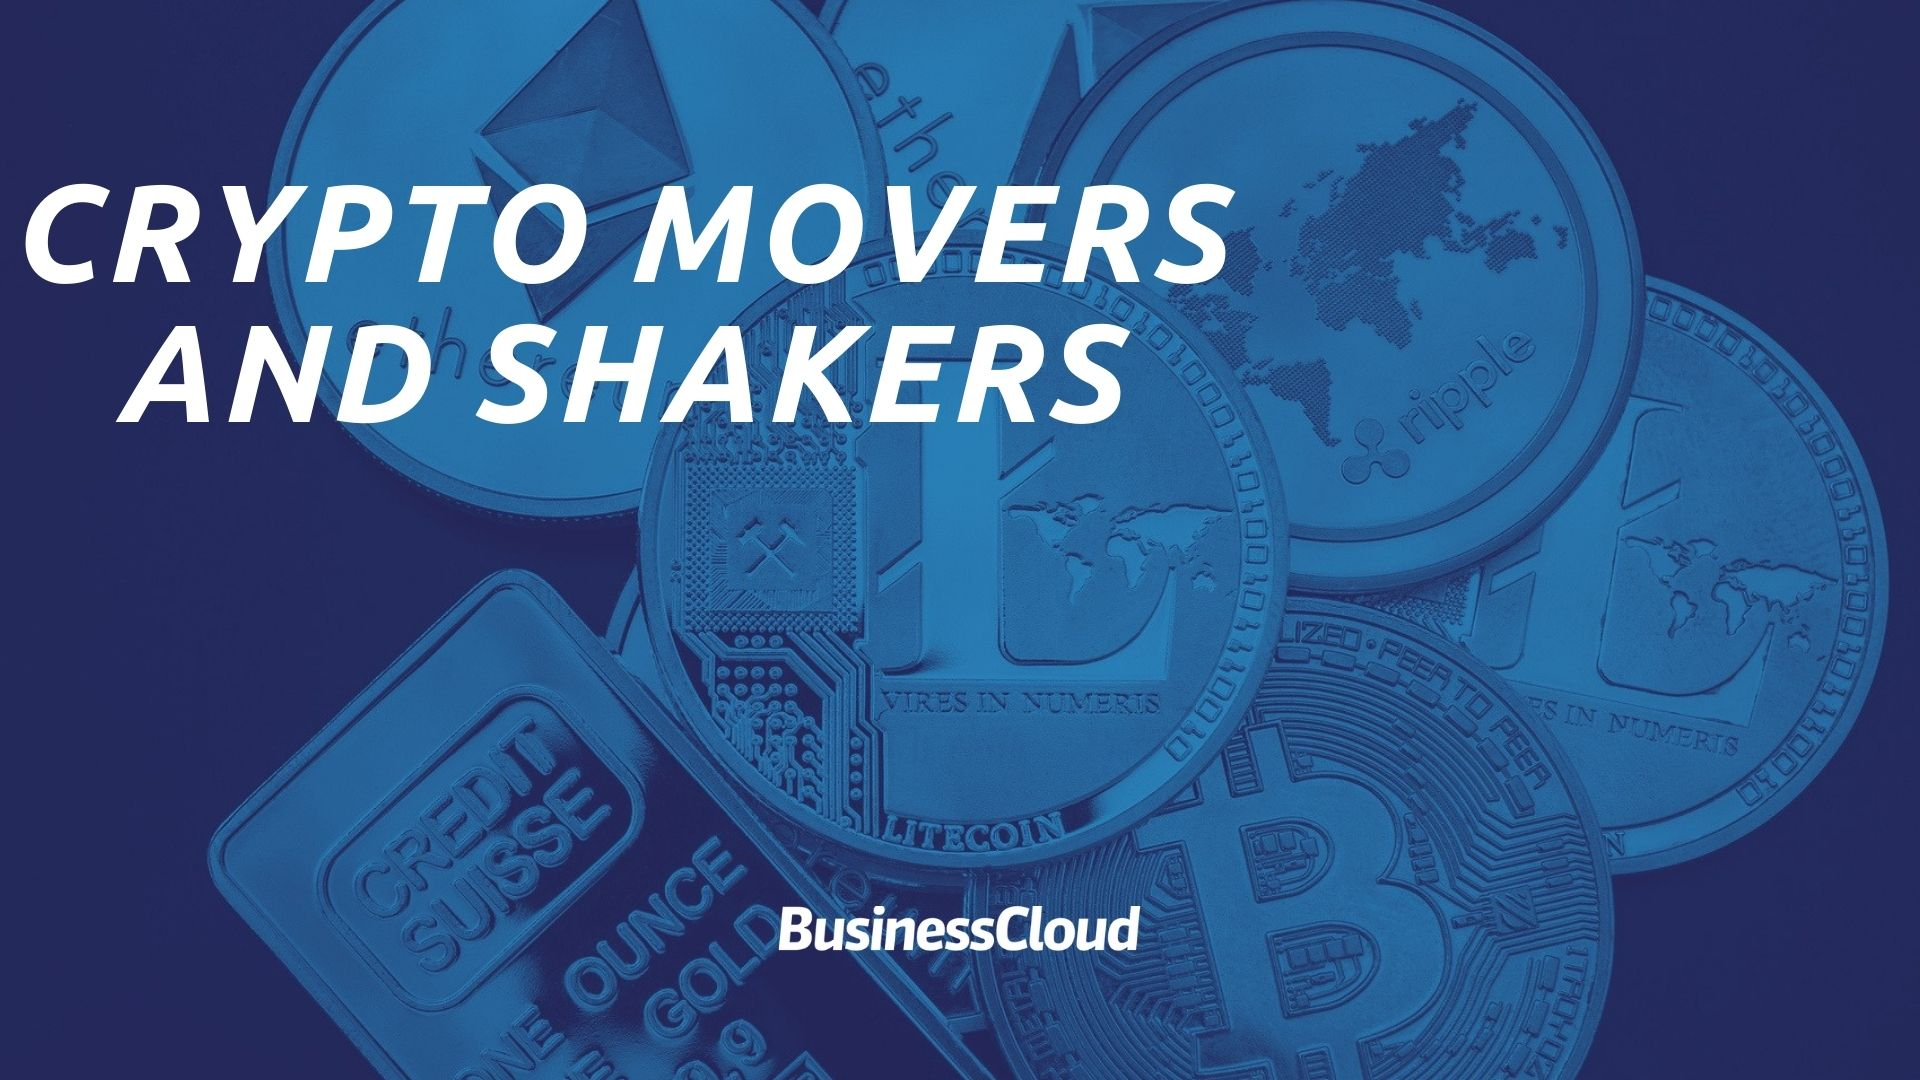 Crypto movers and shakers